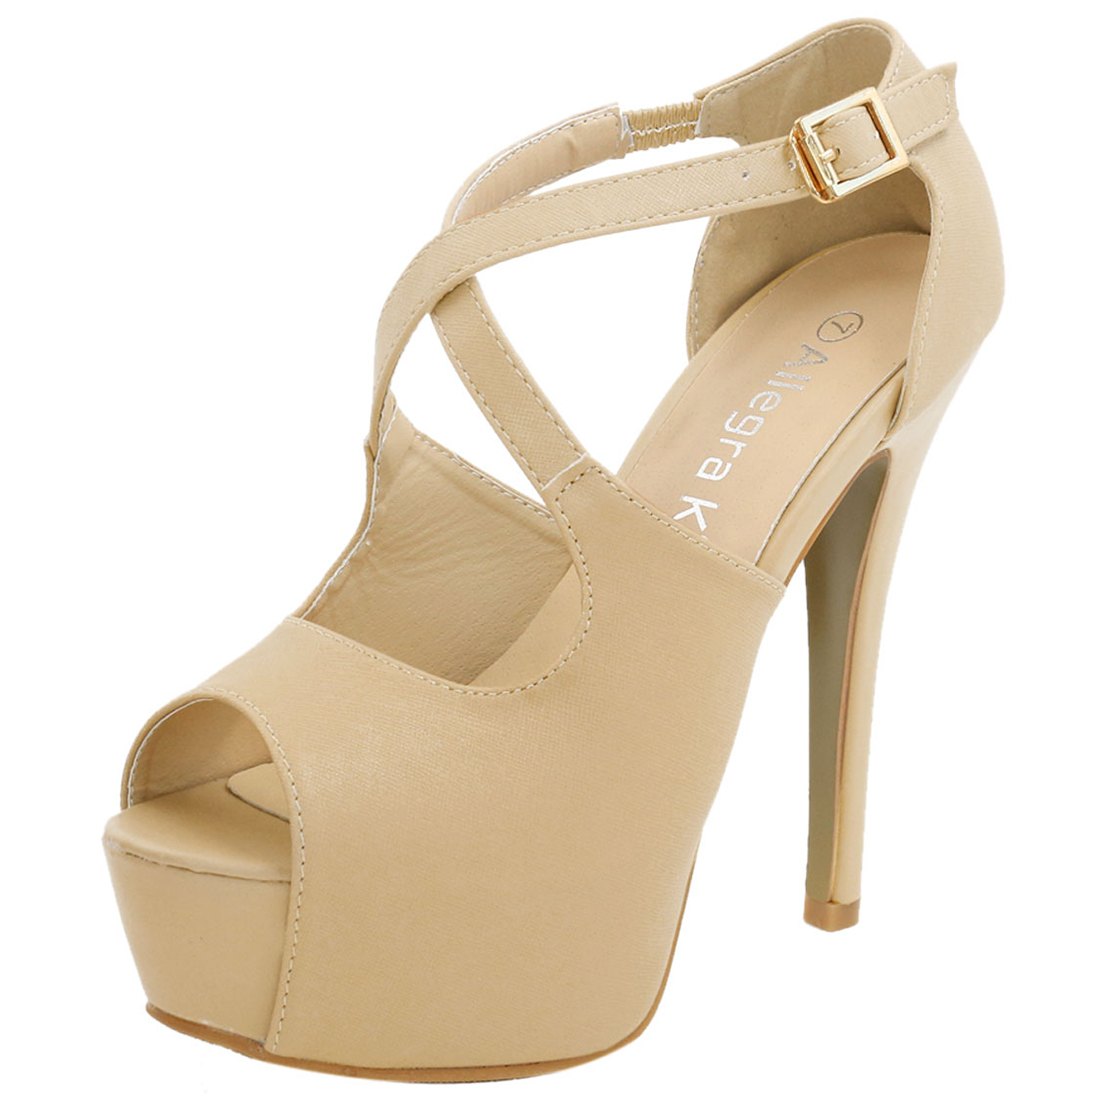 Woman Peep Toe High Heel Crisscross Straps Platform Sandals Beige US 9.5